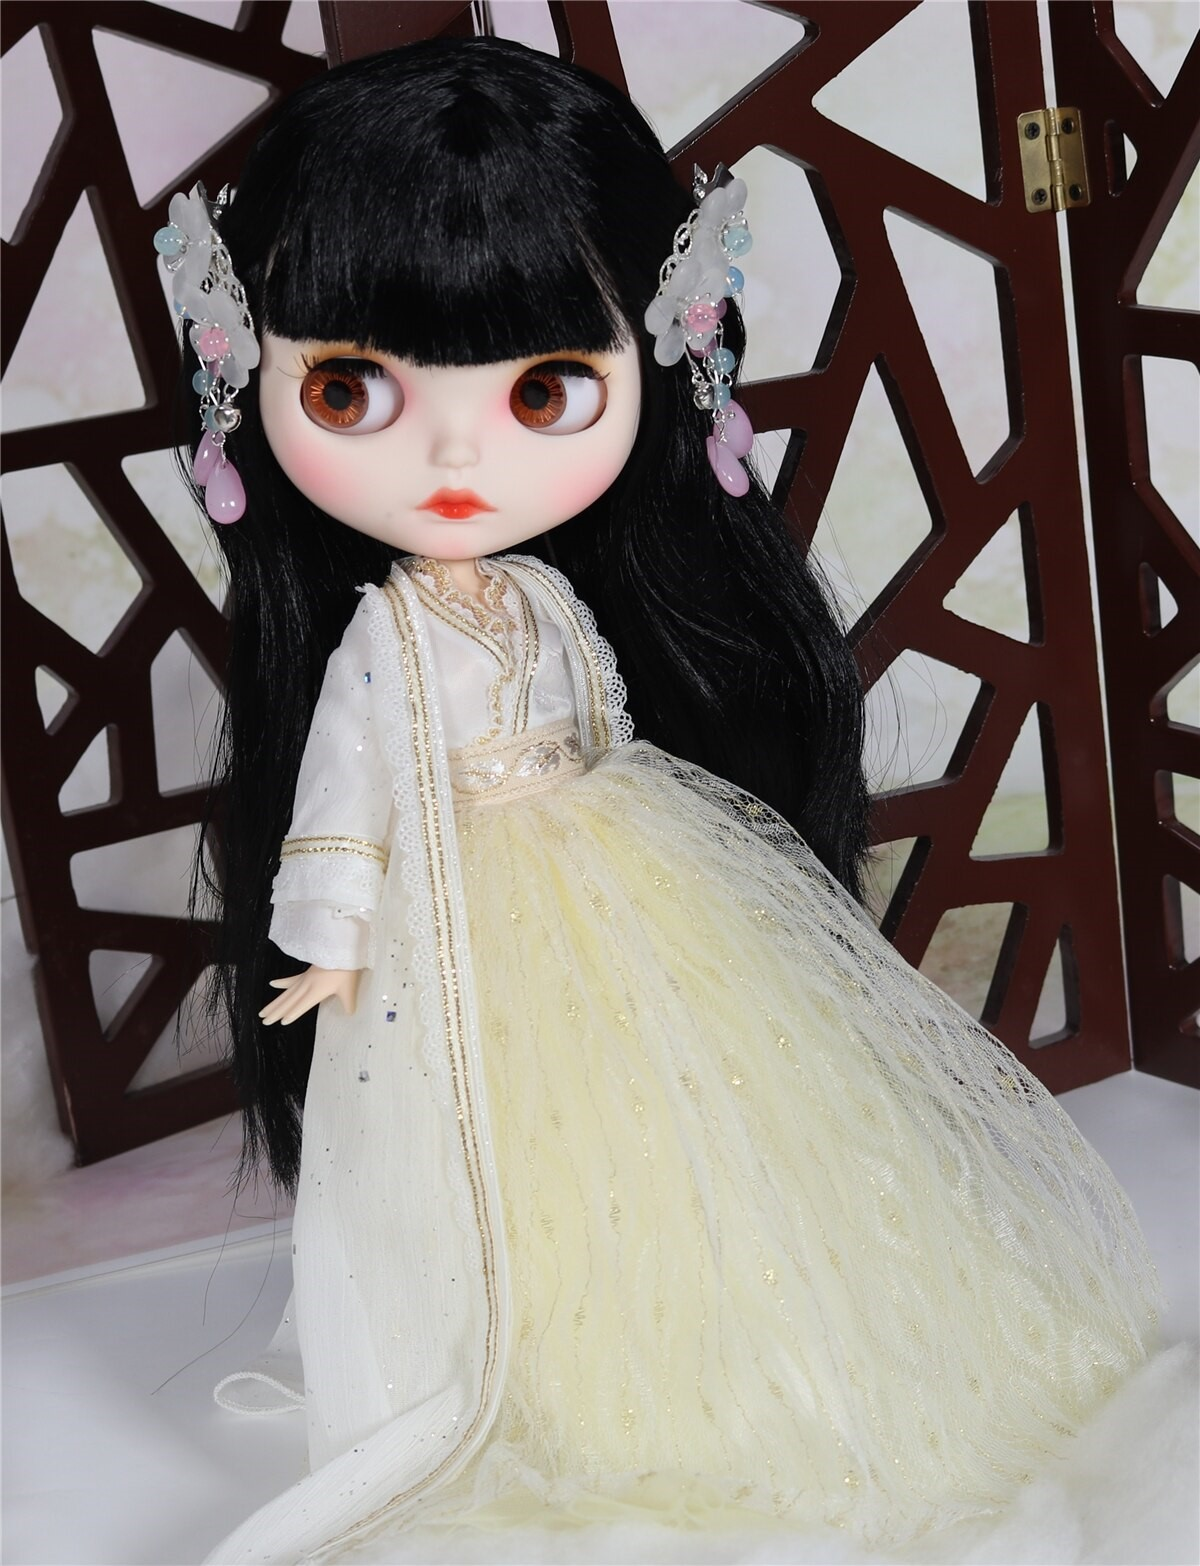 Sage – Premium Custom Blythe Doll with Clothes Smiling Face Premium Blythe Dolls 🆕 Smiling Face